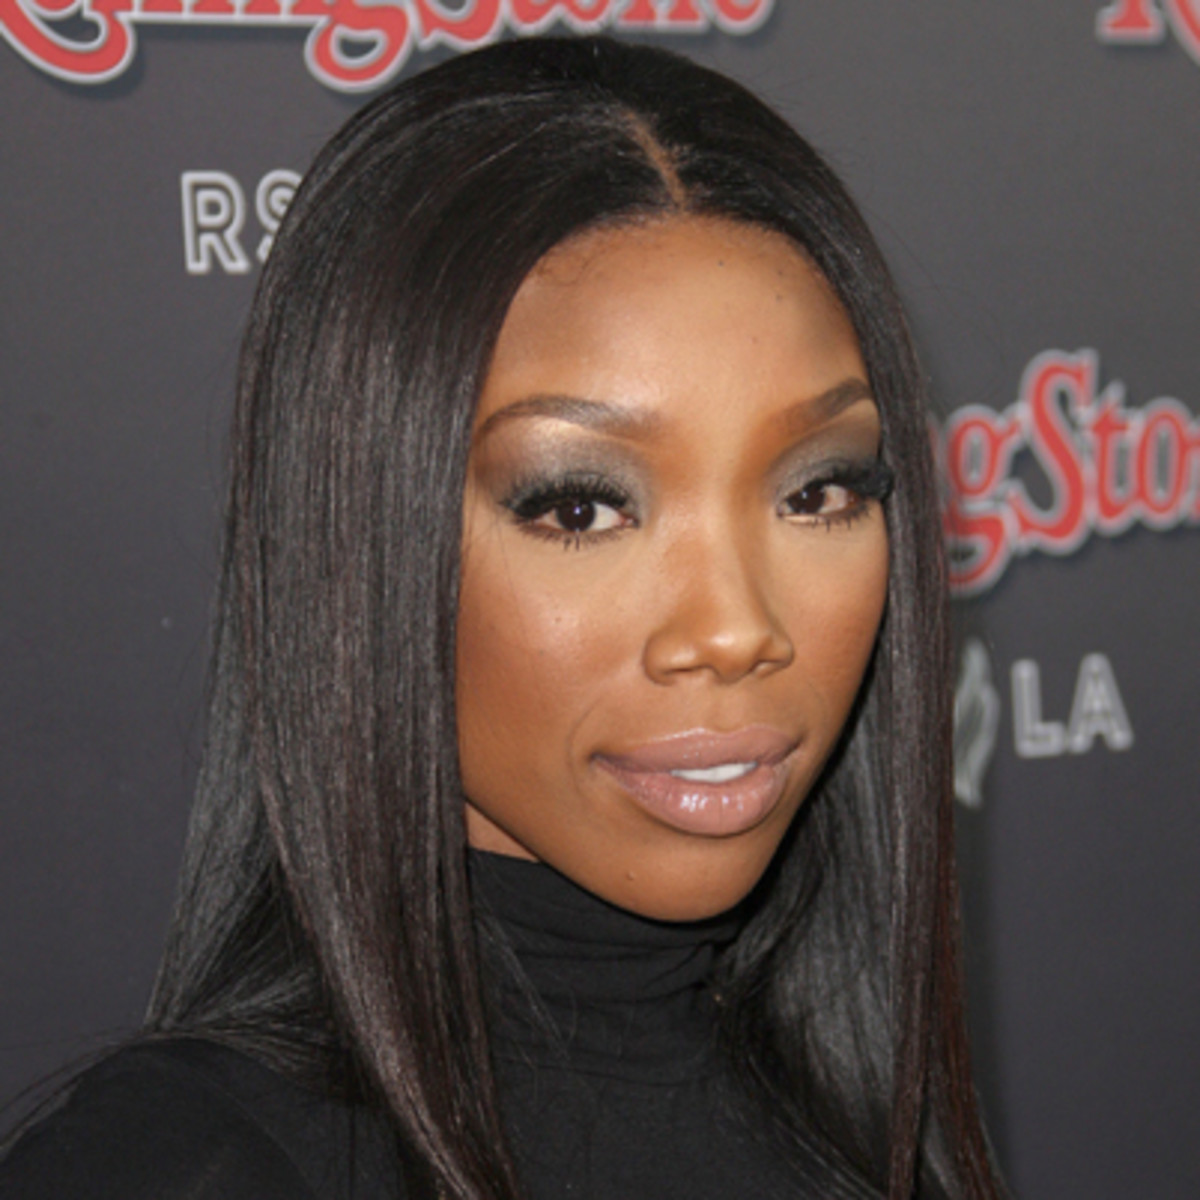 Brandy Norwood born February 11, 1979 (age 39)